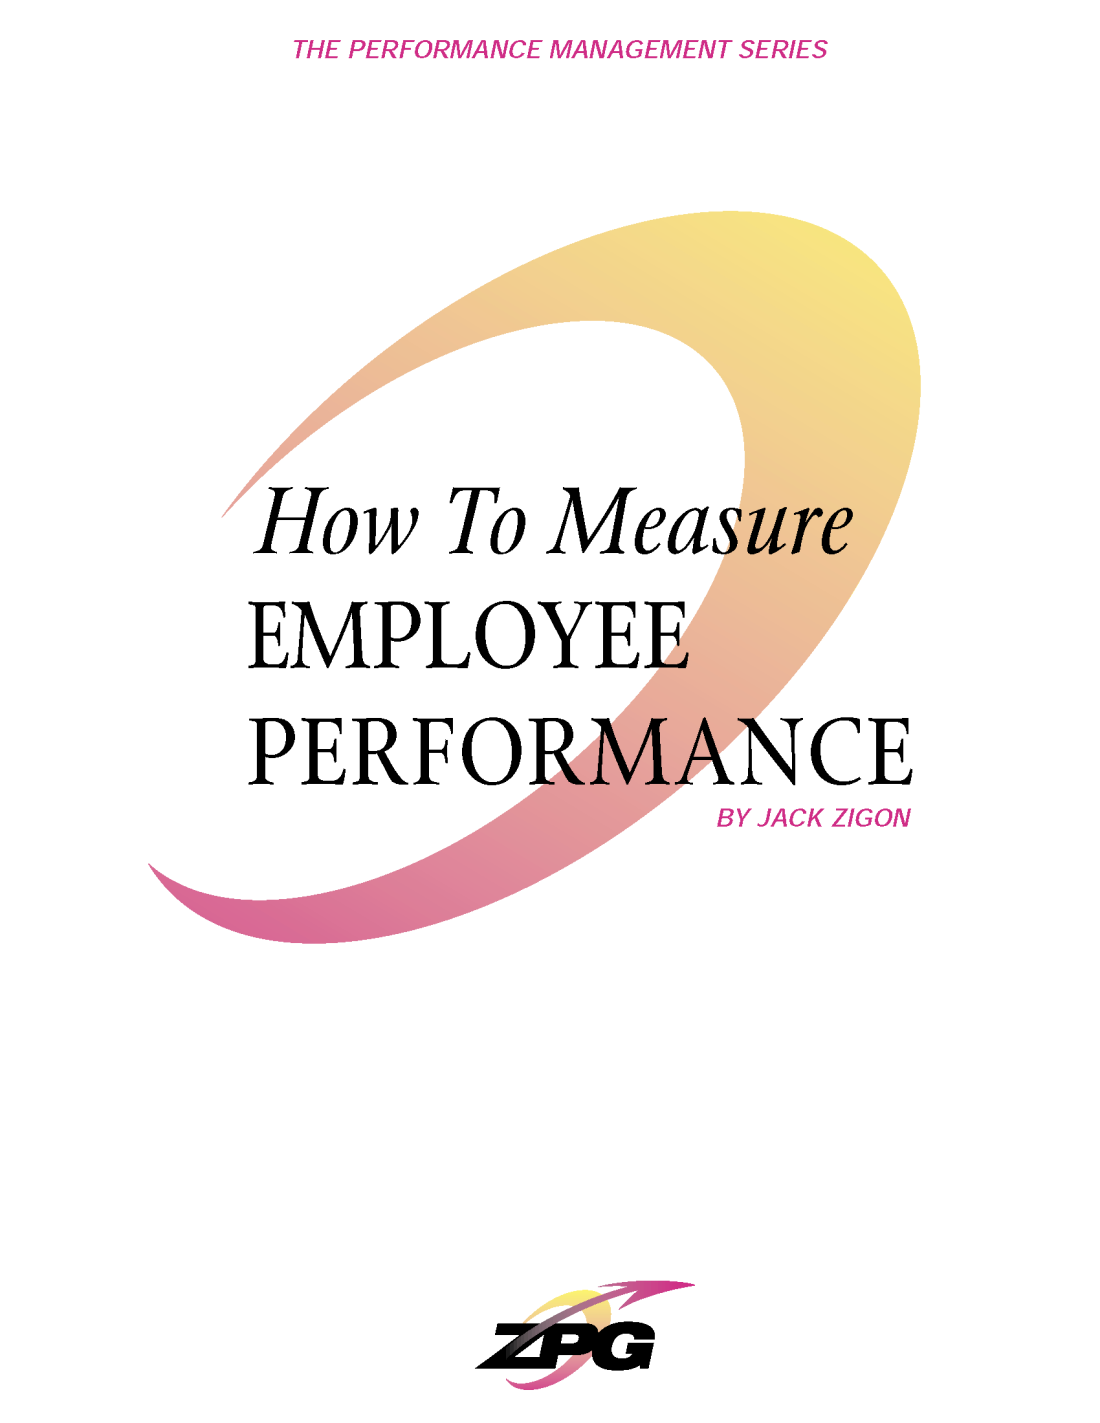 how-to-measure-employee-performance_Page_001.png